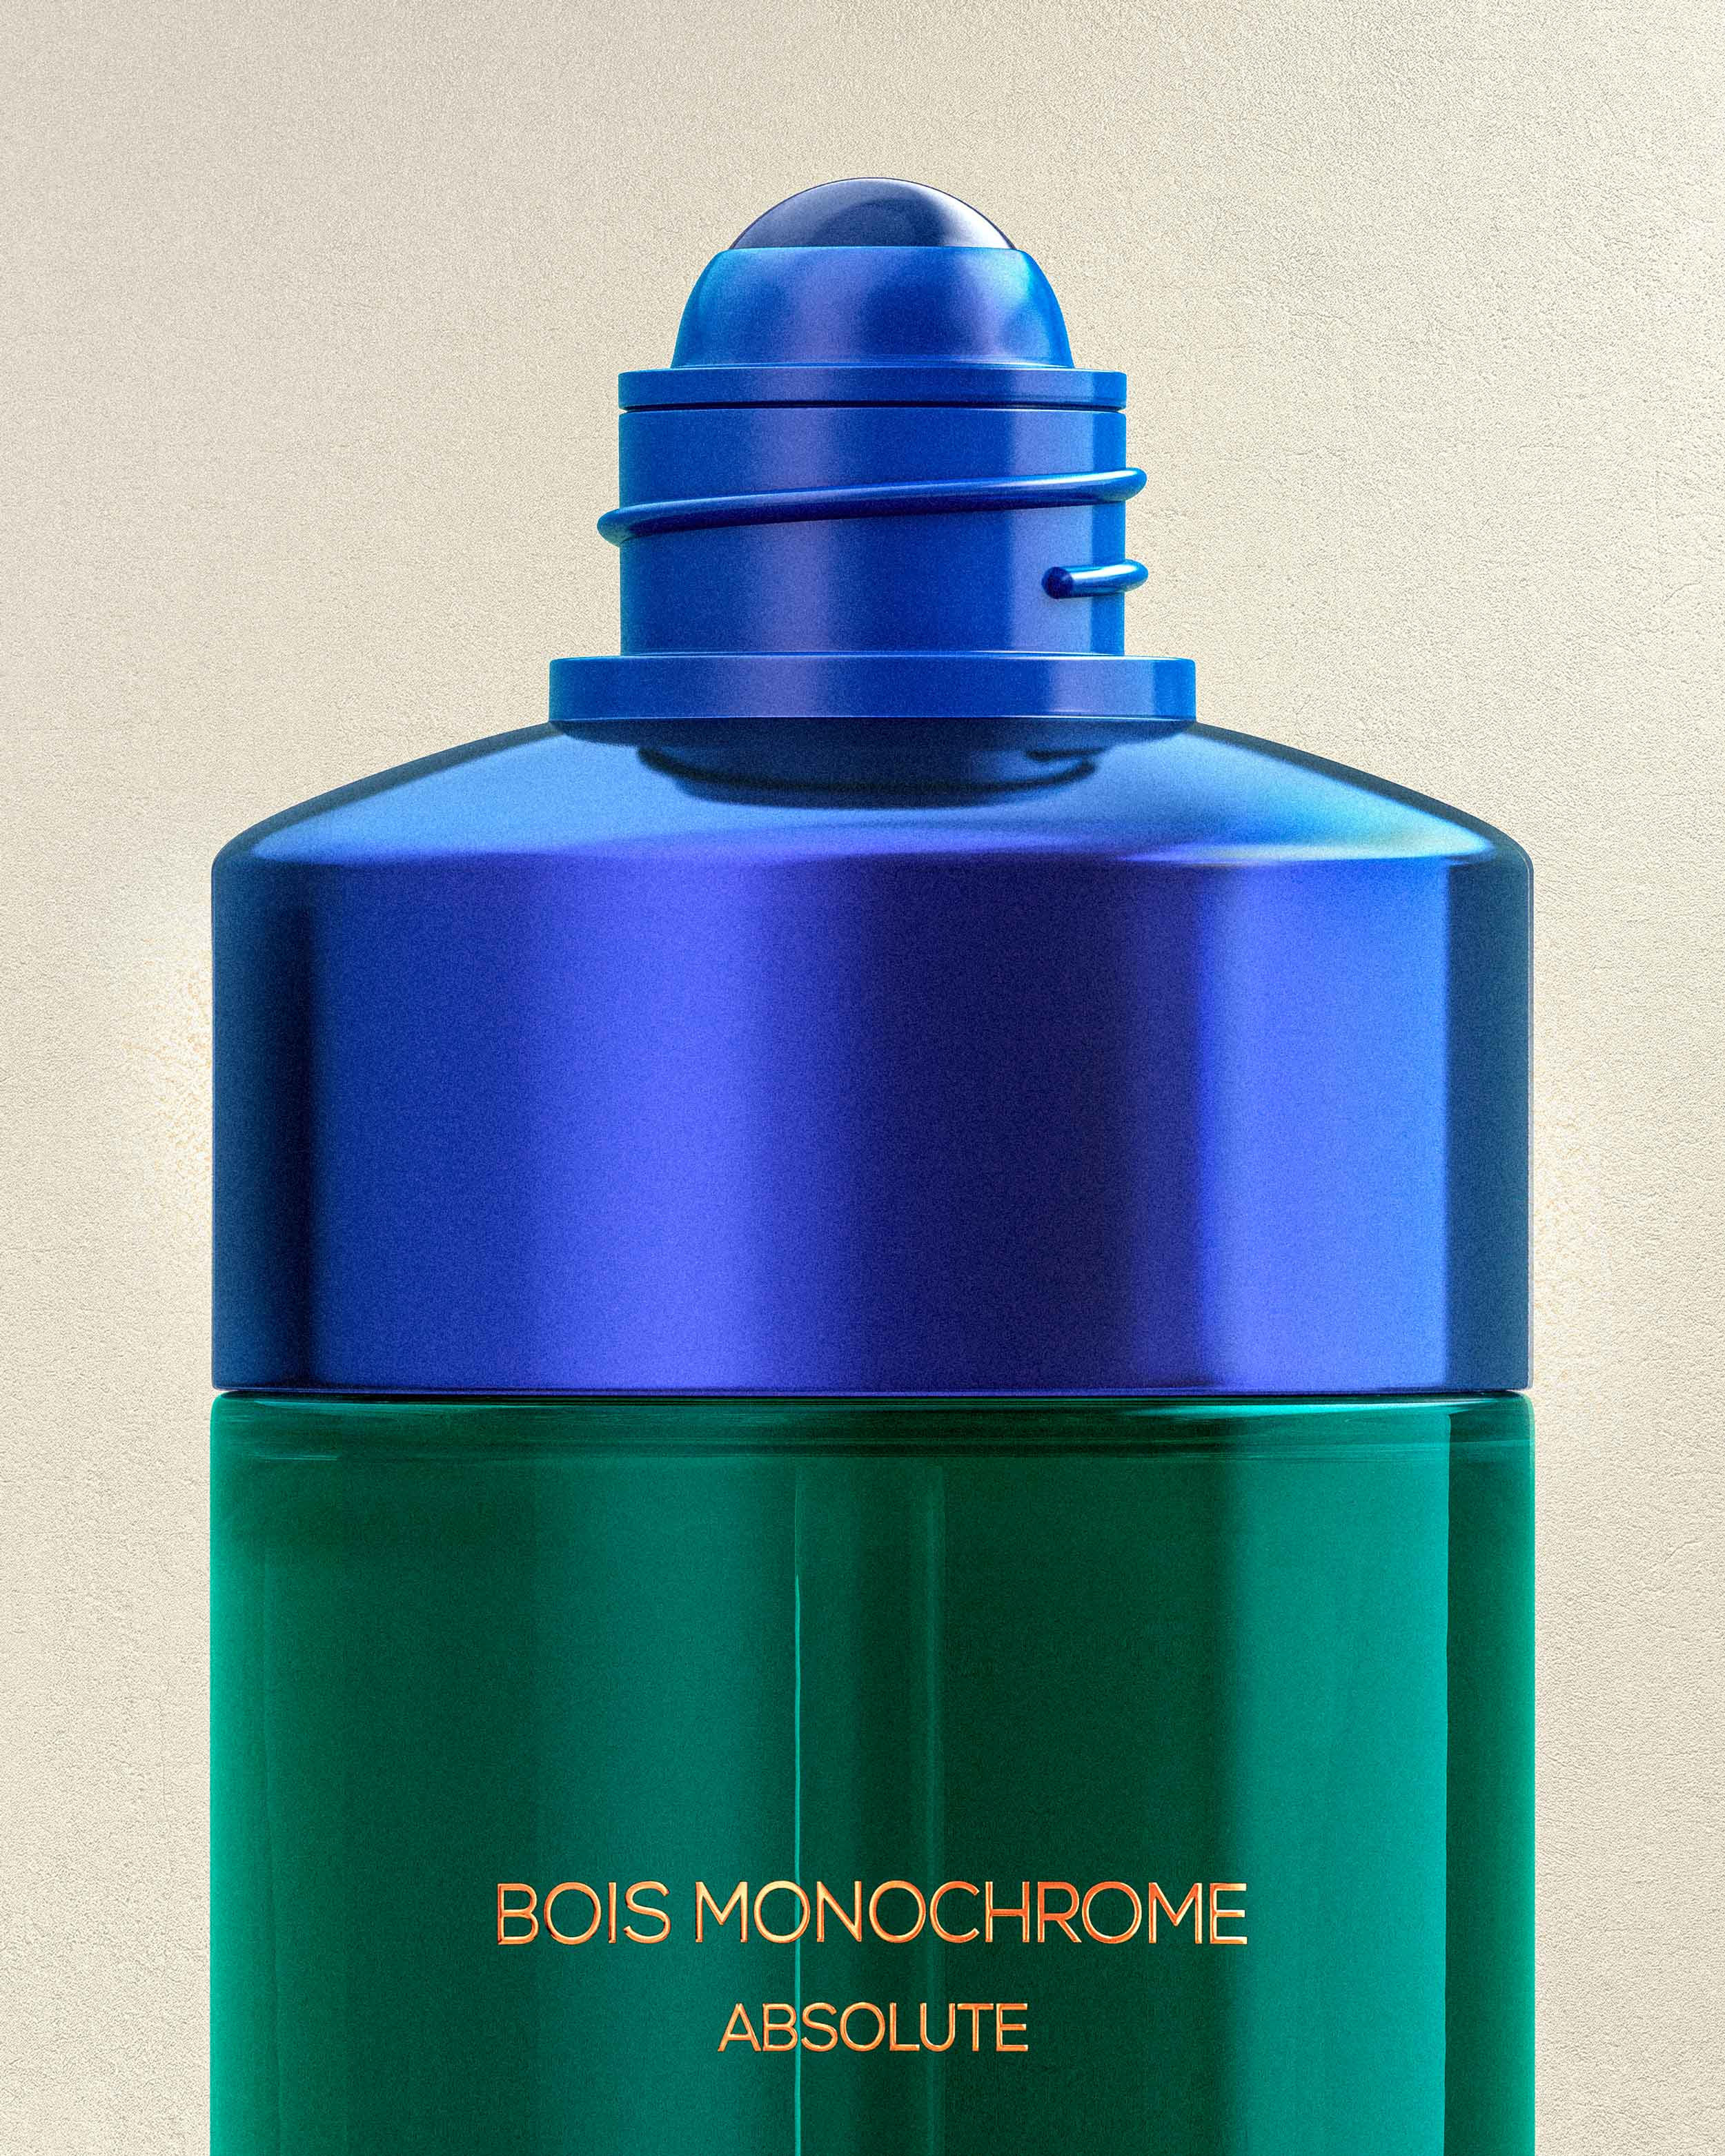 OJAR Absolute Bois Monochrome Perfume Roll-on